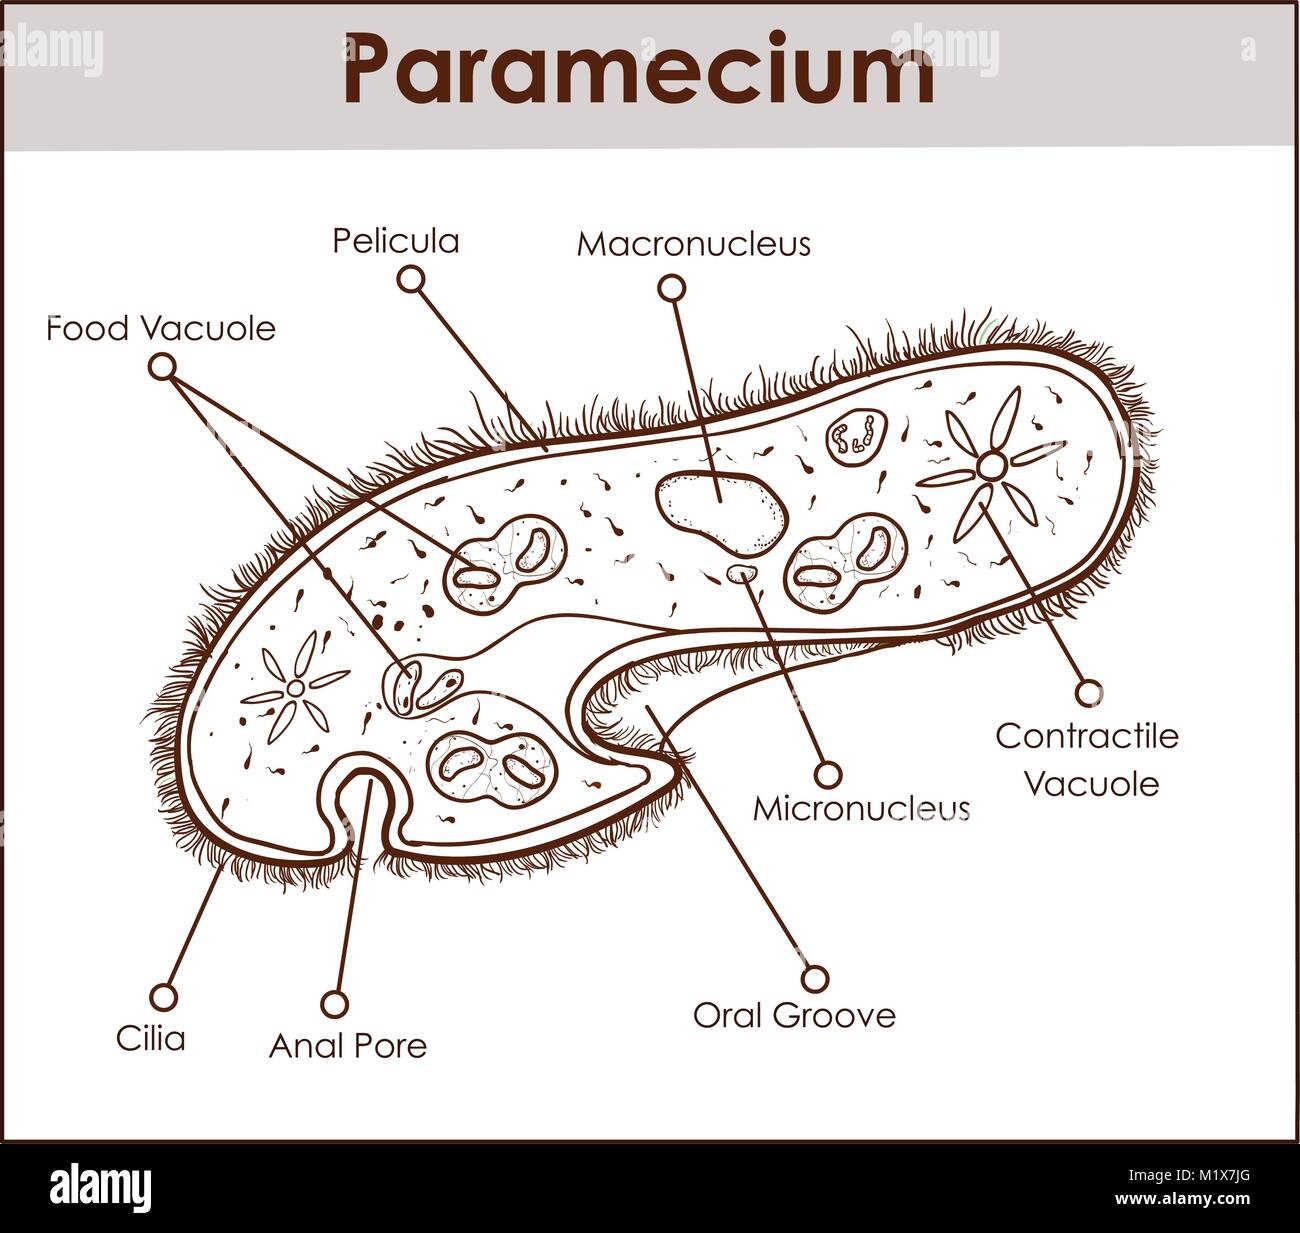 paramecium stock photos & paramecium stock images - alamy didinium diagram